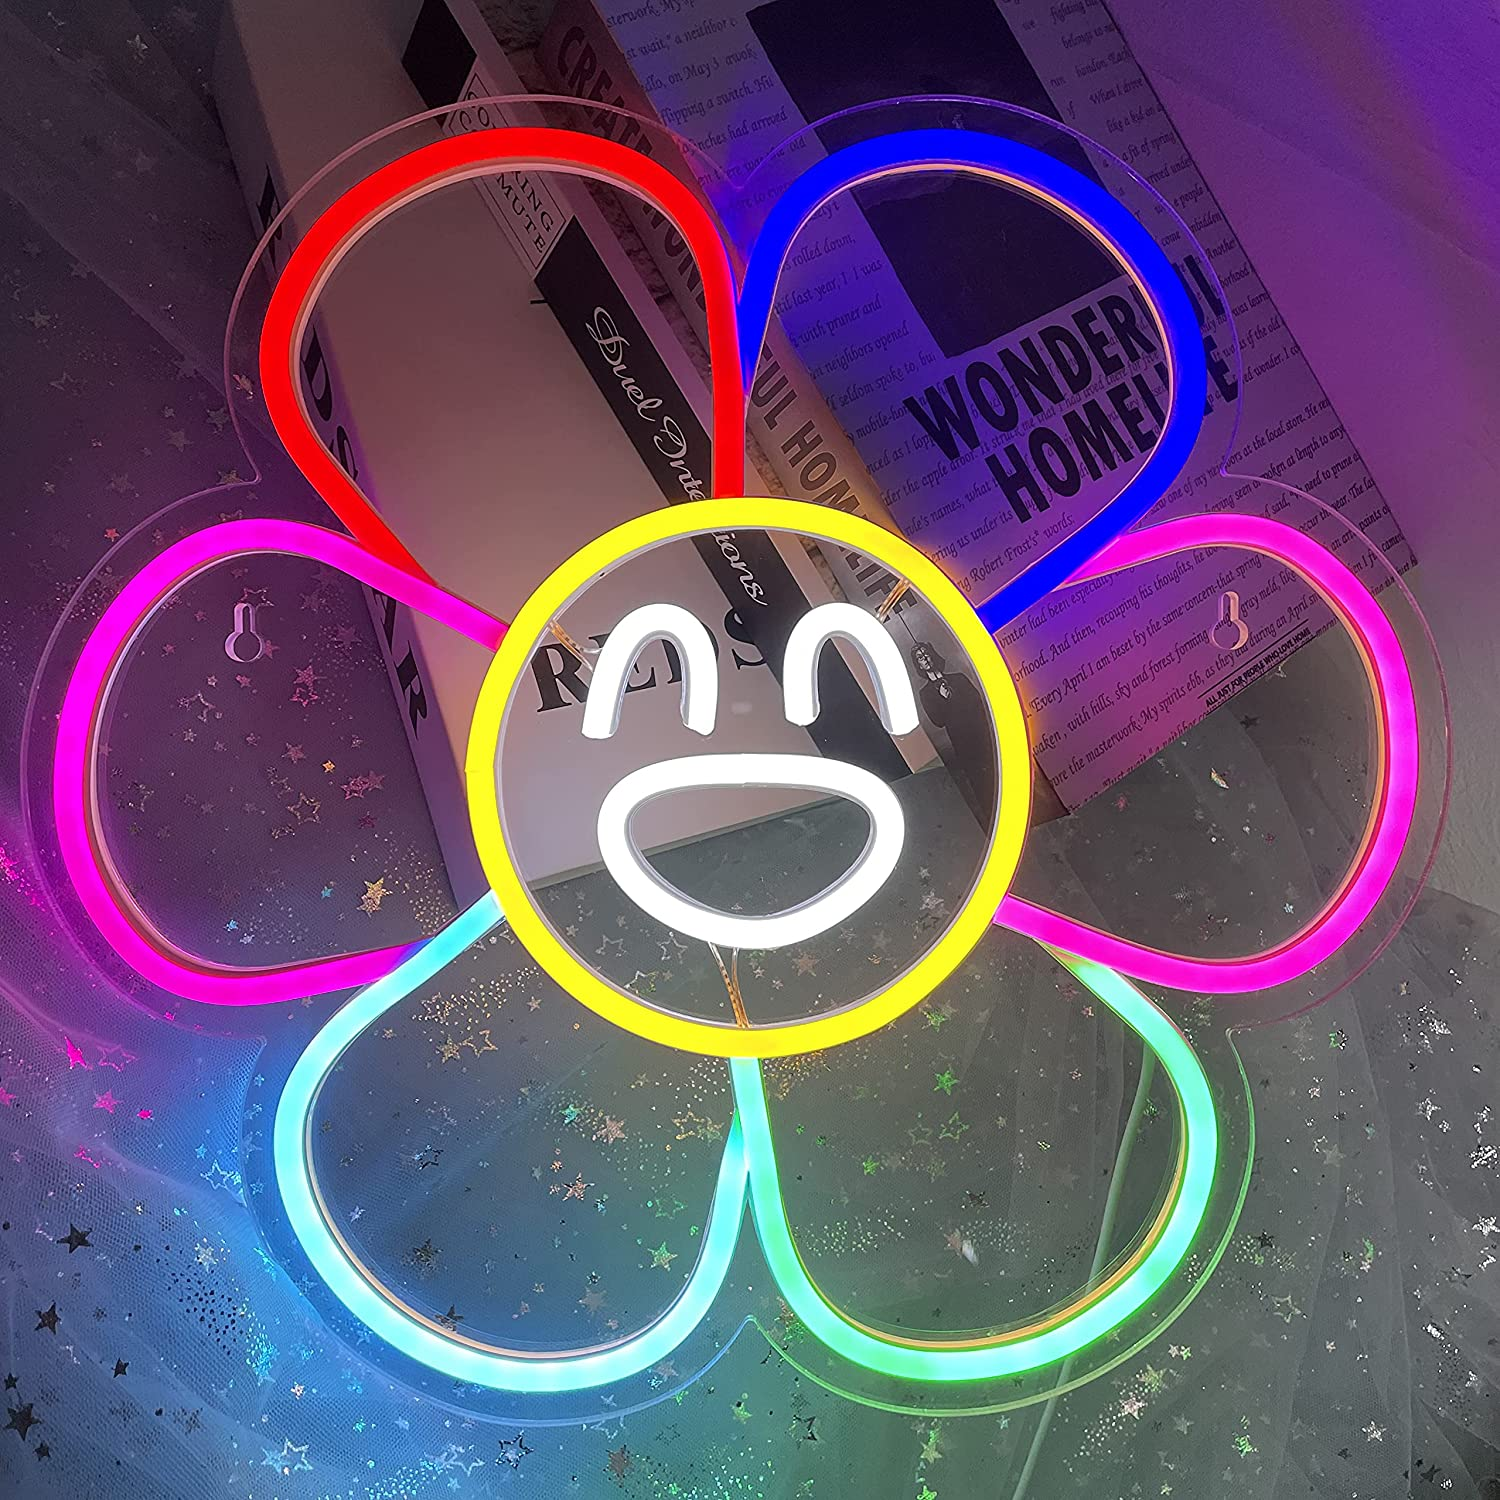 Smiley Face Sunflower Neon Sign Light LED Smiley Face Gifts Light Up Sign for Bedroom Wall Decor Neon Lights Wall Sign Smile Face Rainbow Flower LED Sign Party Décor Sign Lights